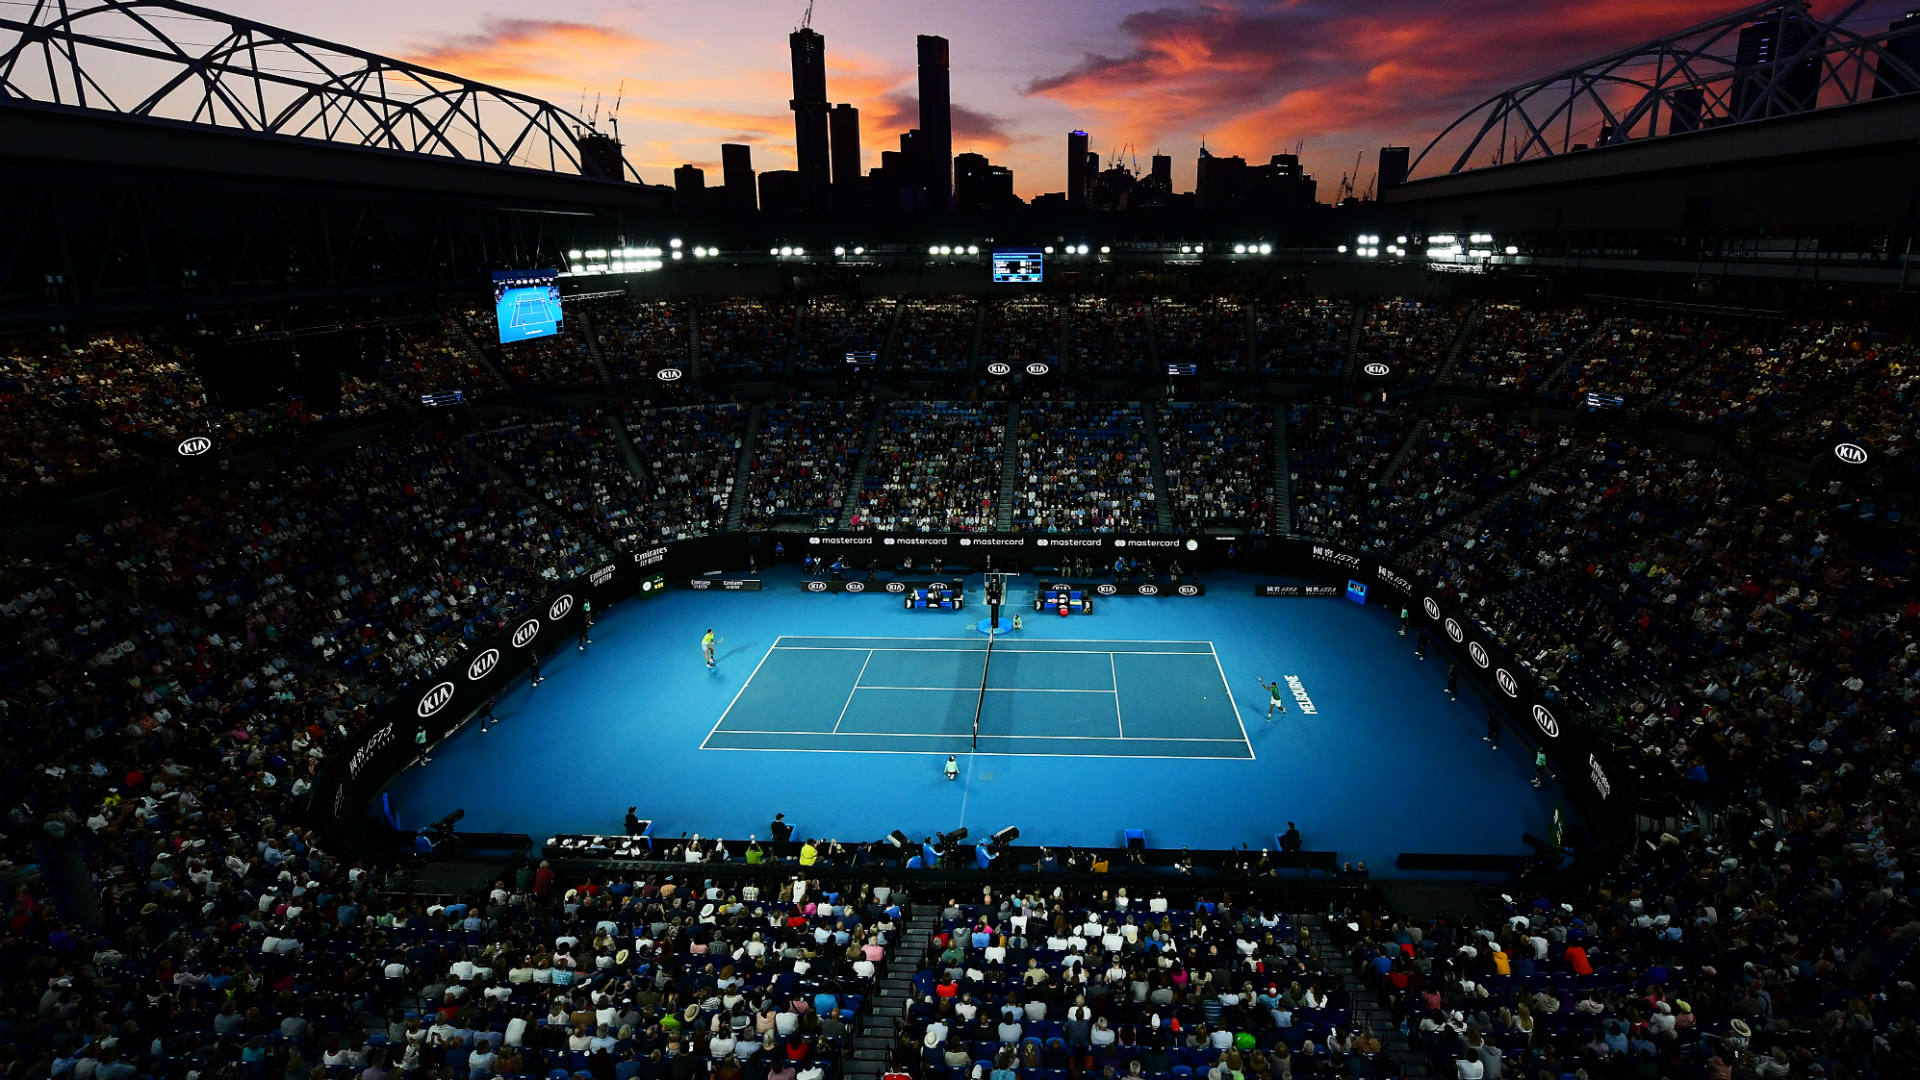 Australian Open will go ahead as planned, insists tournament chief Tiley